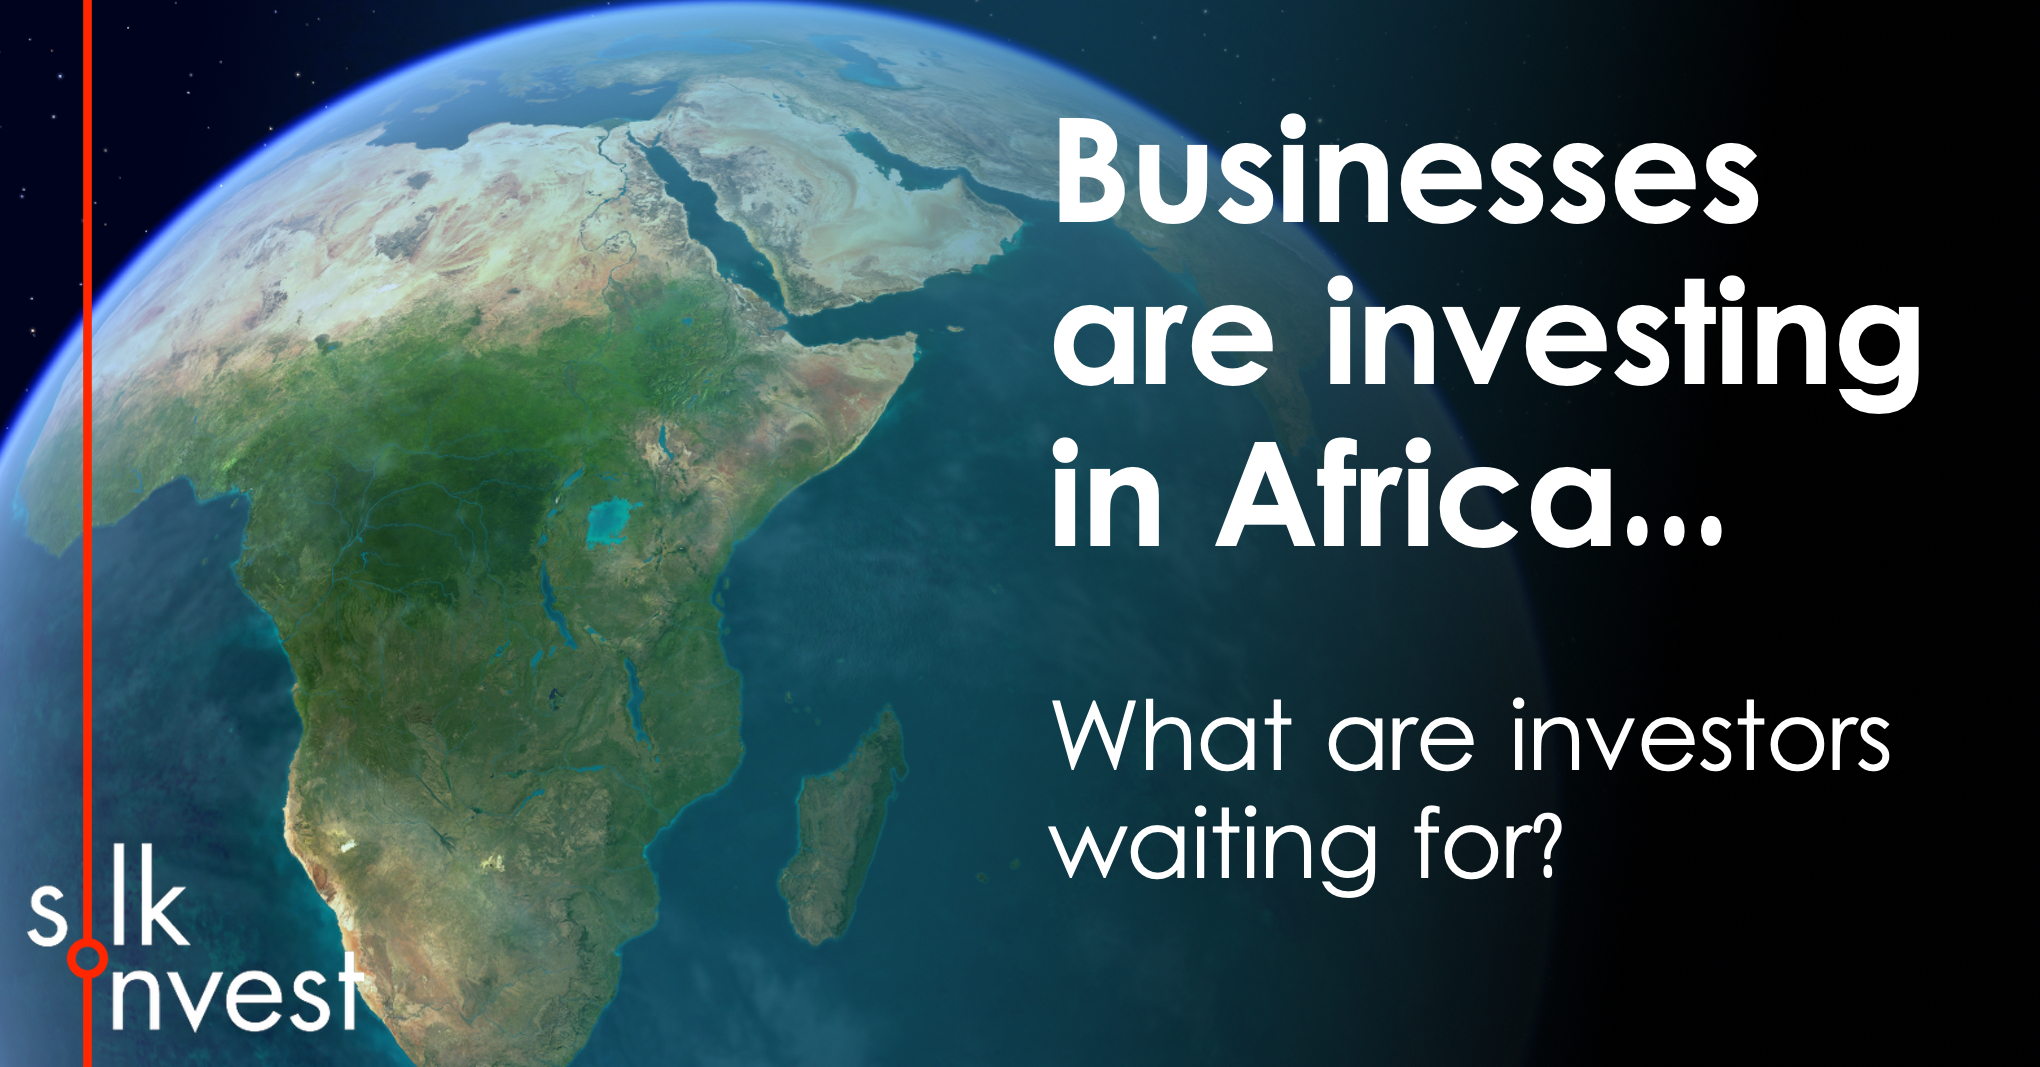 Silk businesses are investing in africa.jpg